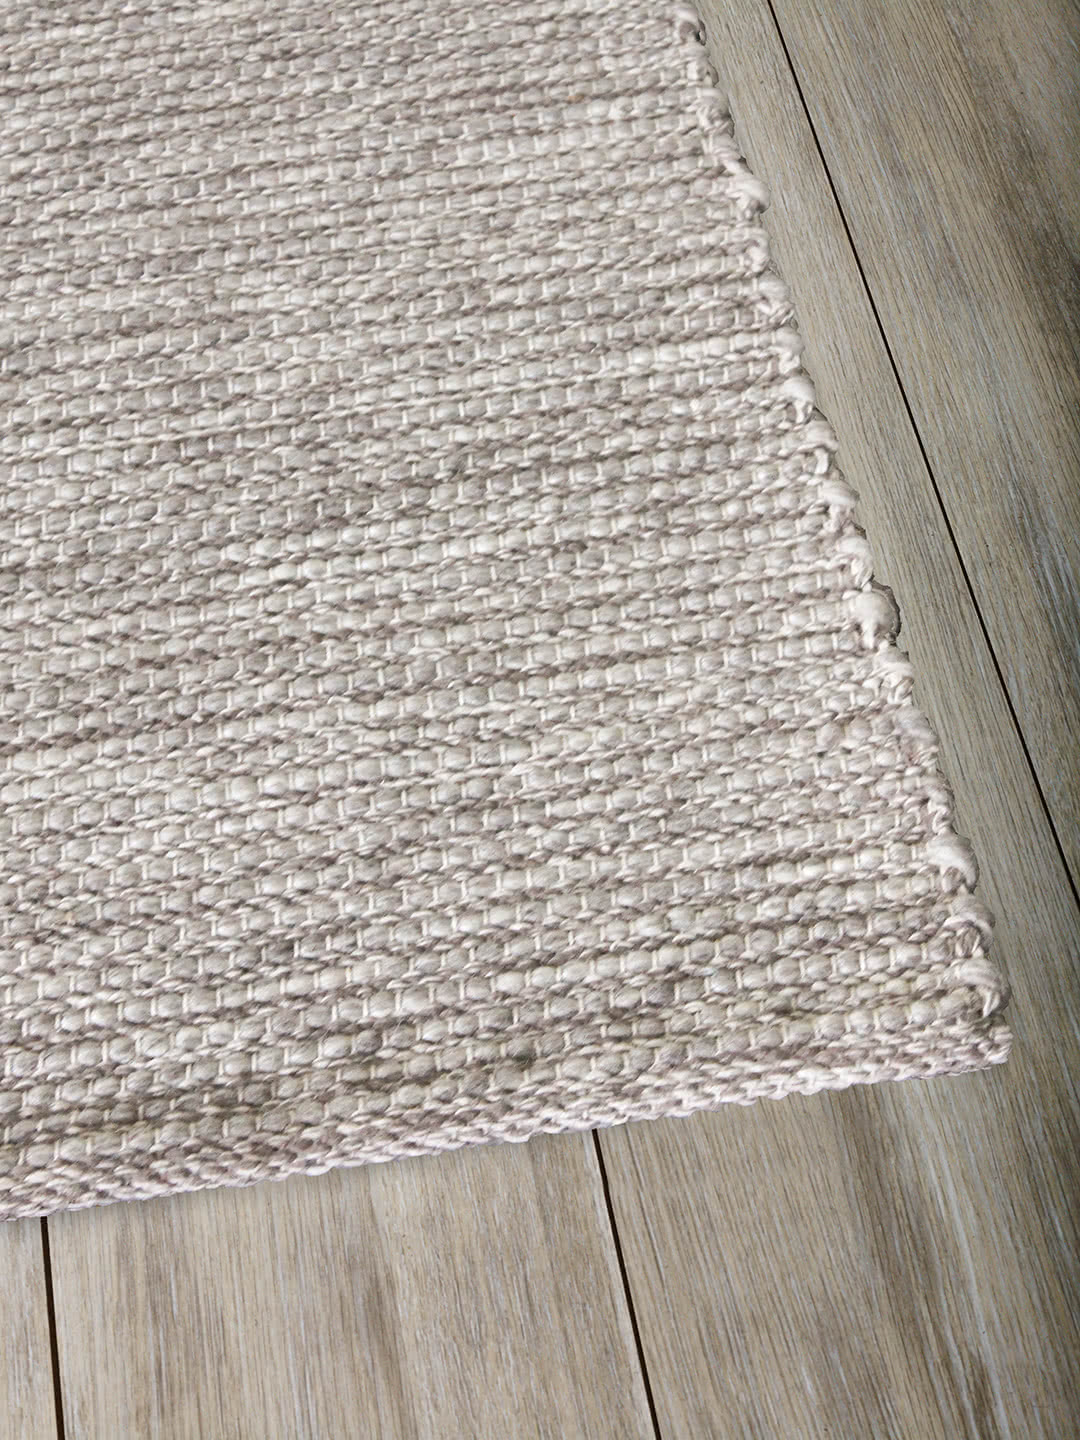 Natural Silver pure wool rugs Perth